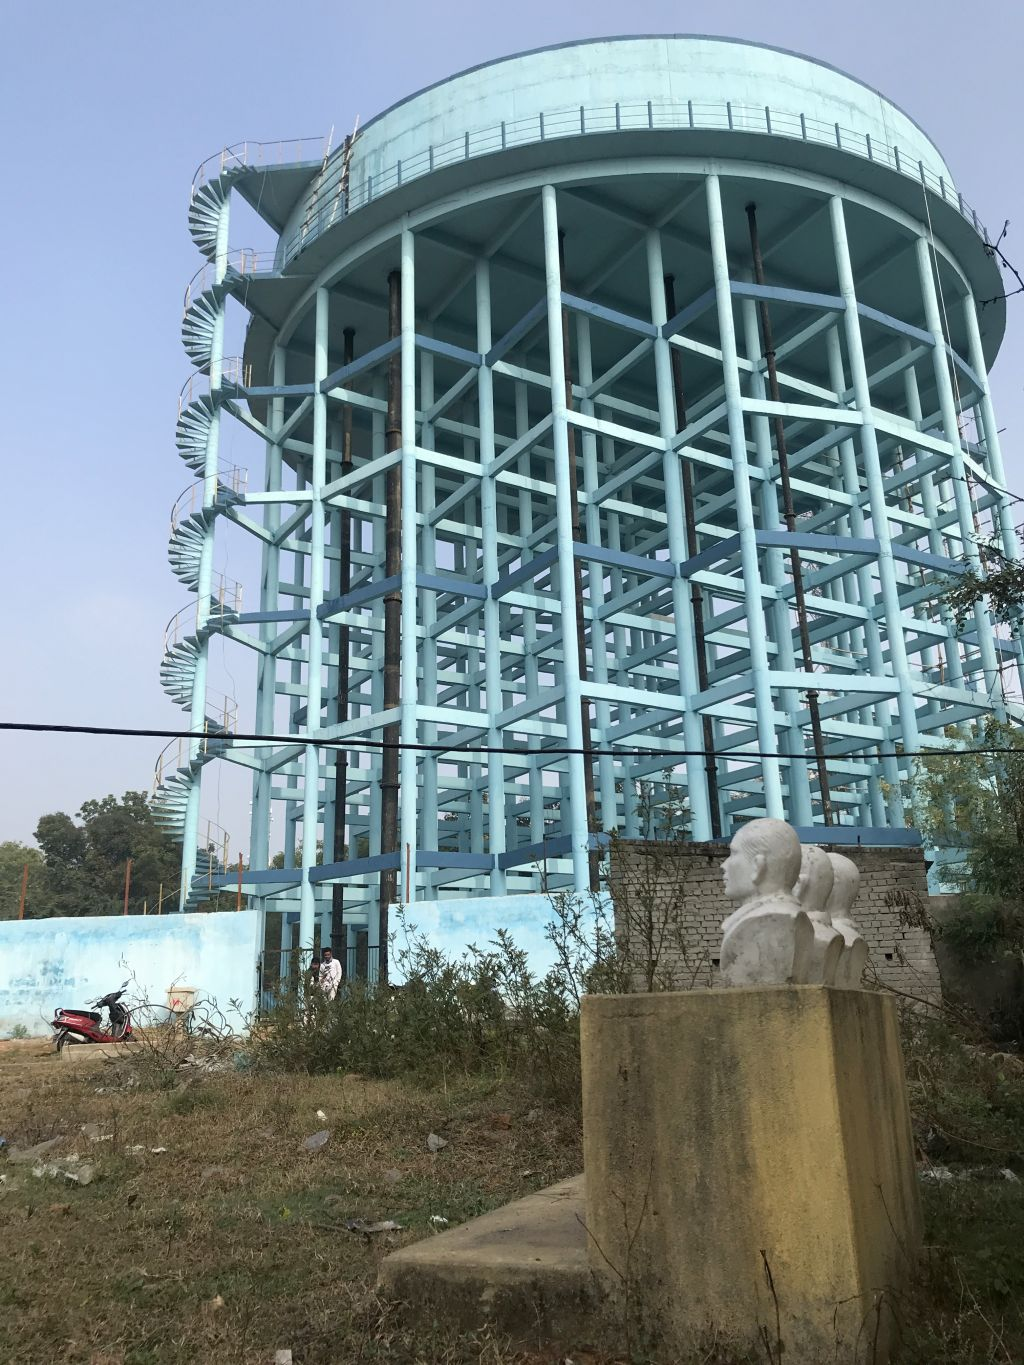 Construction for the water scheme is taking place on lands of deep cultural significance (Image: Anirudha Nagar, Accountability Counsel)